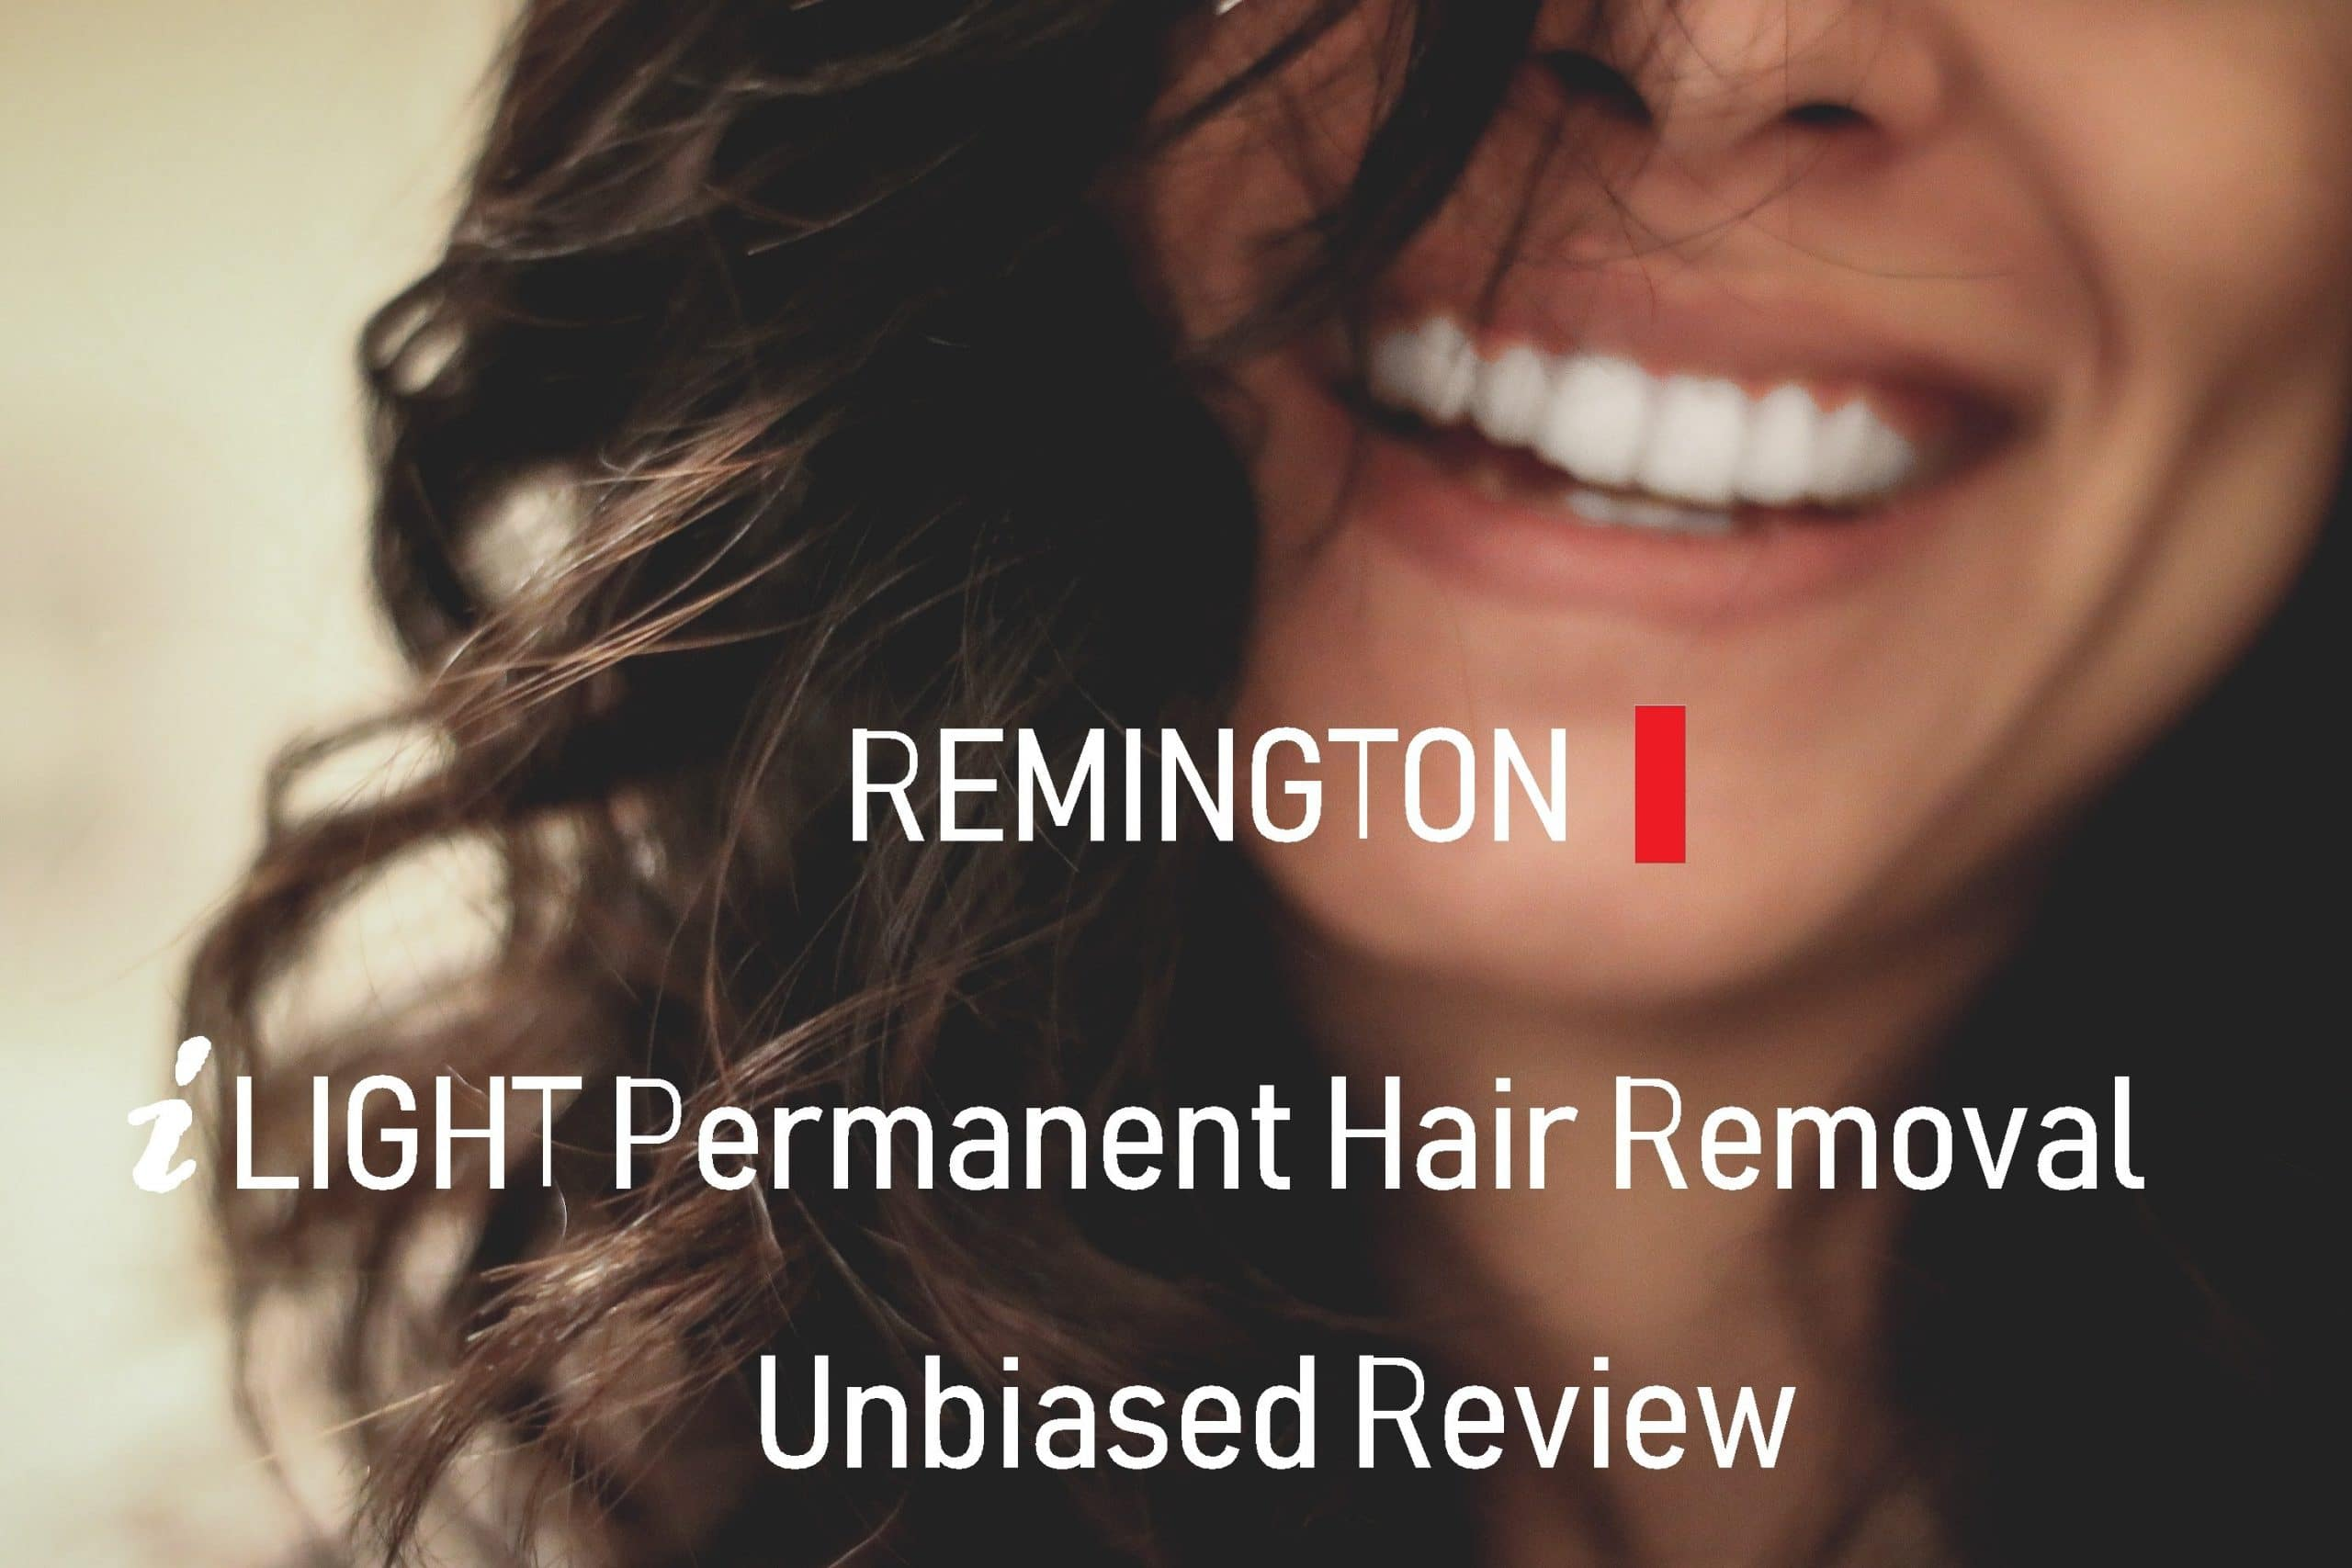 Remington iLIGHT Hair Removal Systems Overview